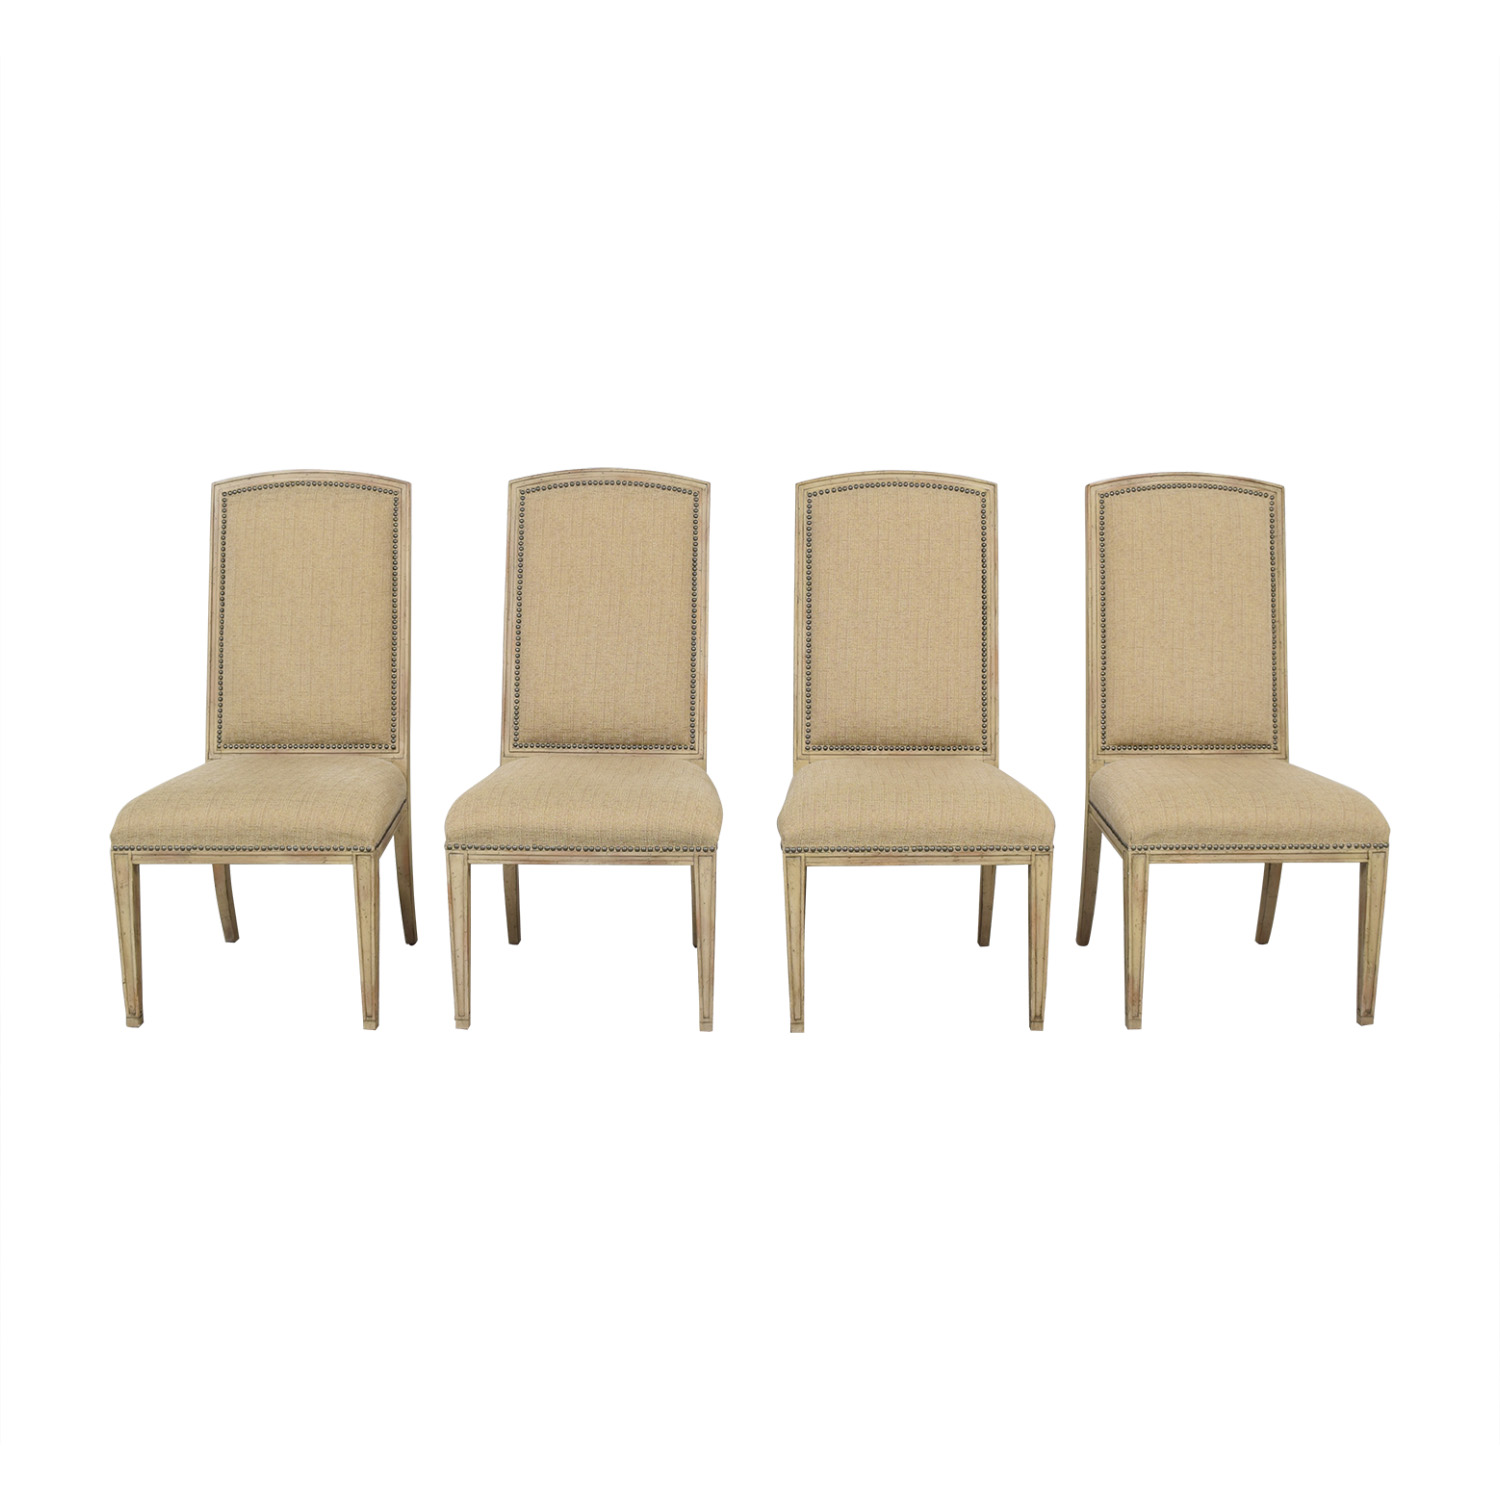 Hooker Furniture Hooker Furniture Sanctuary Dining Chairs on sale